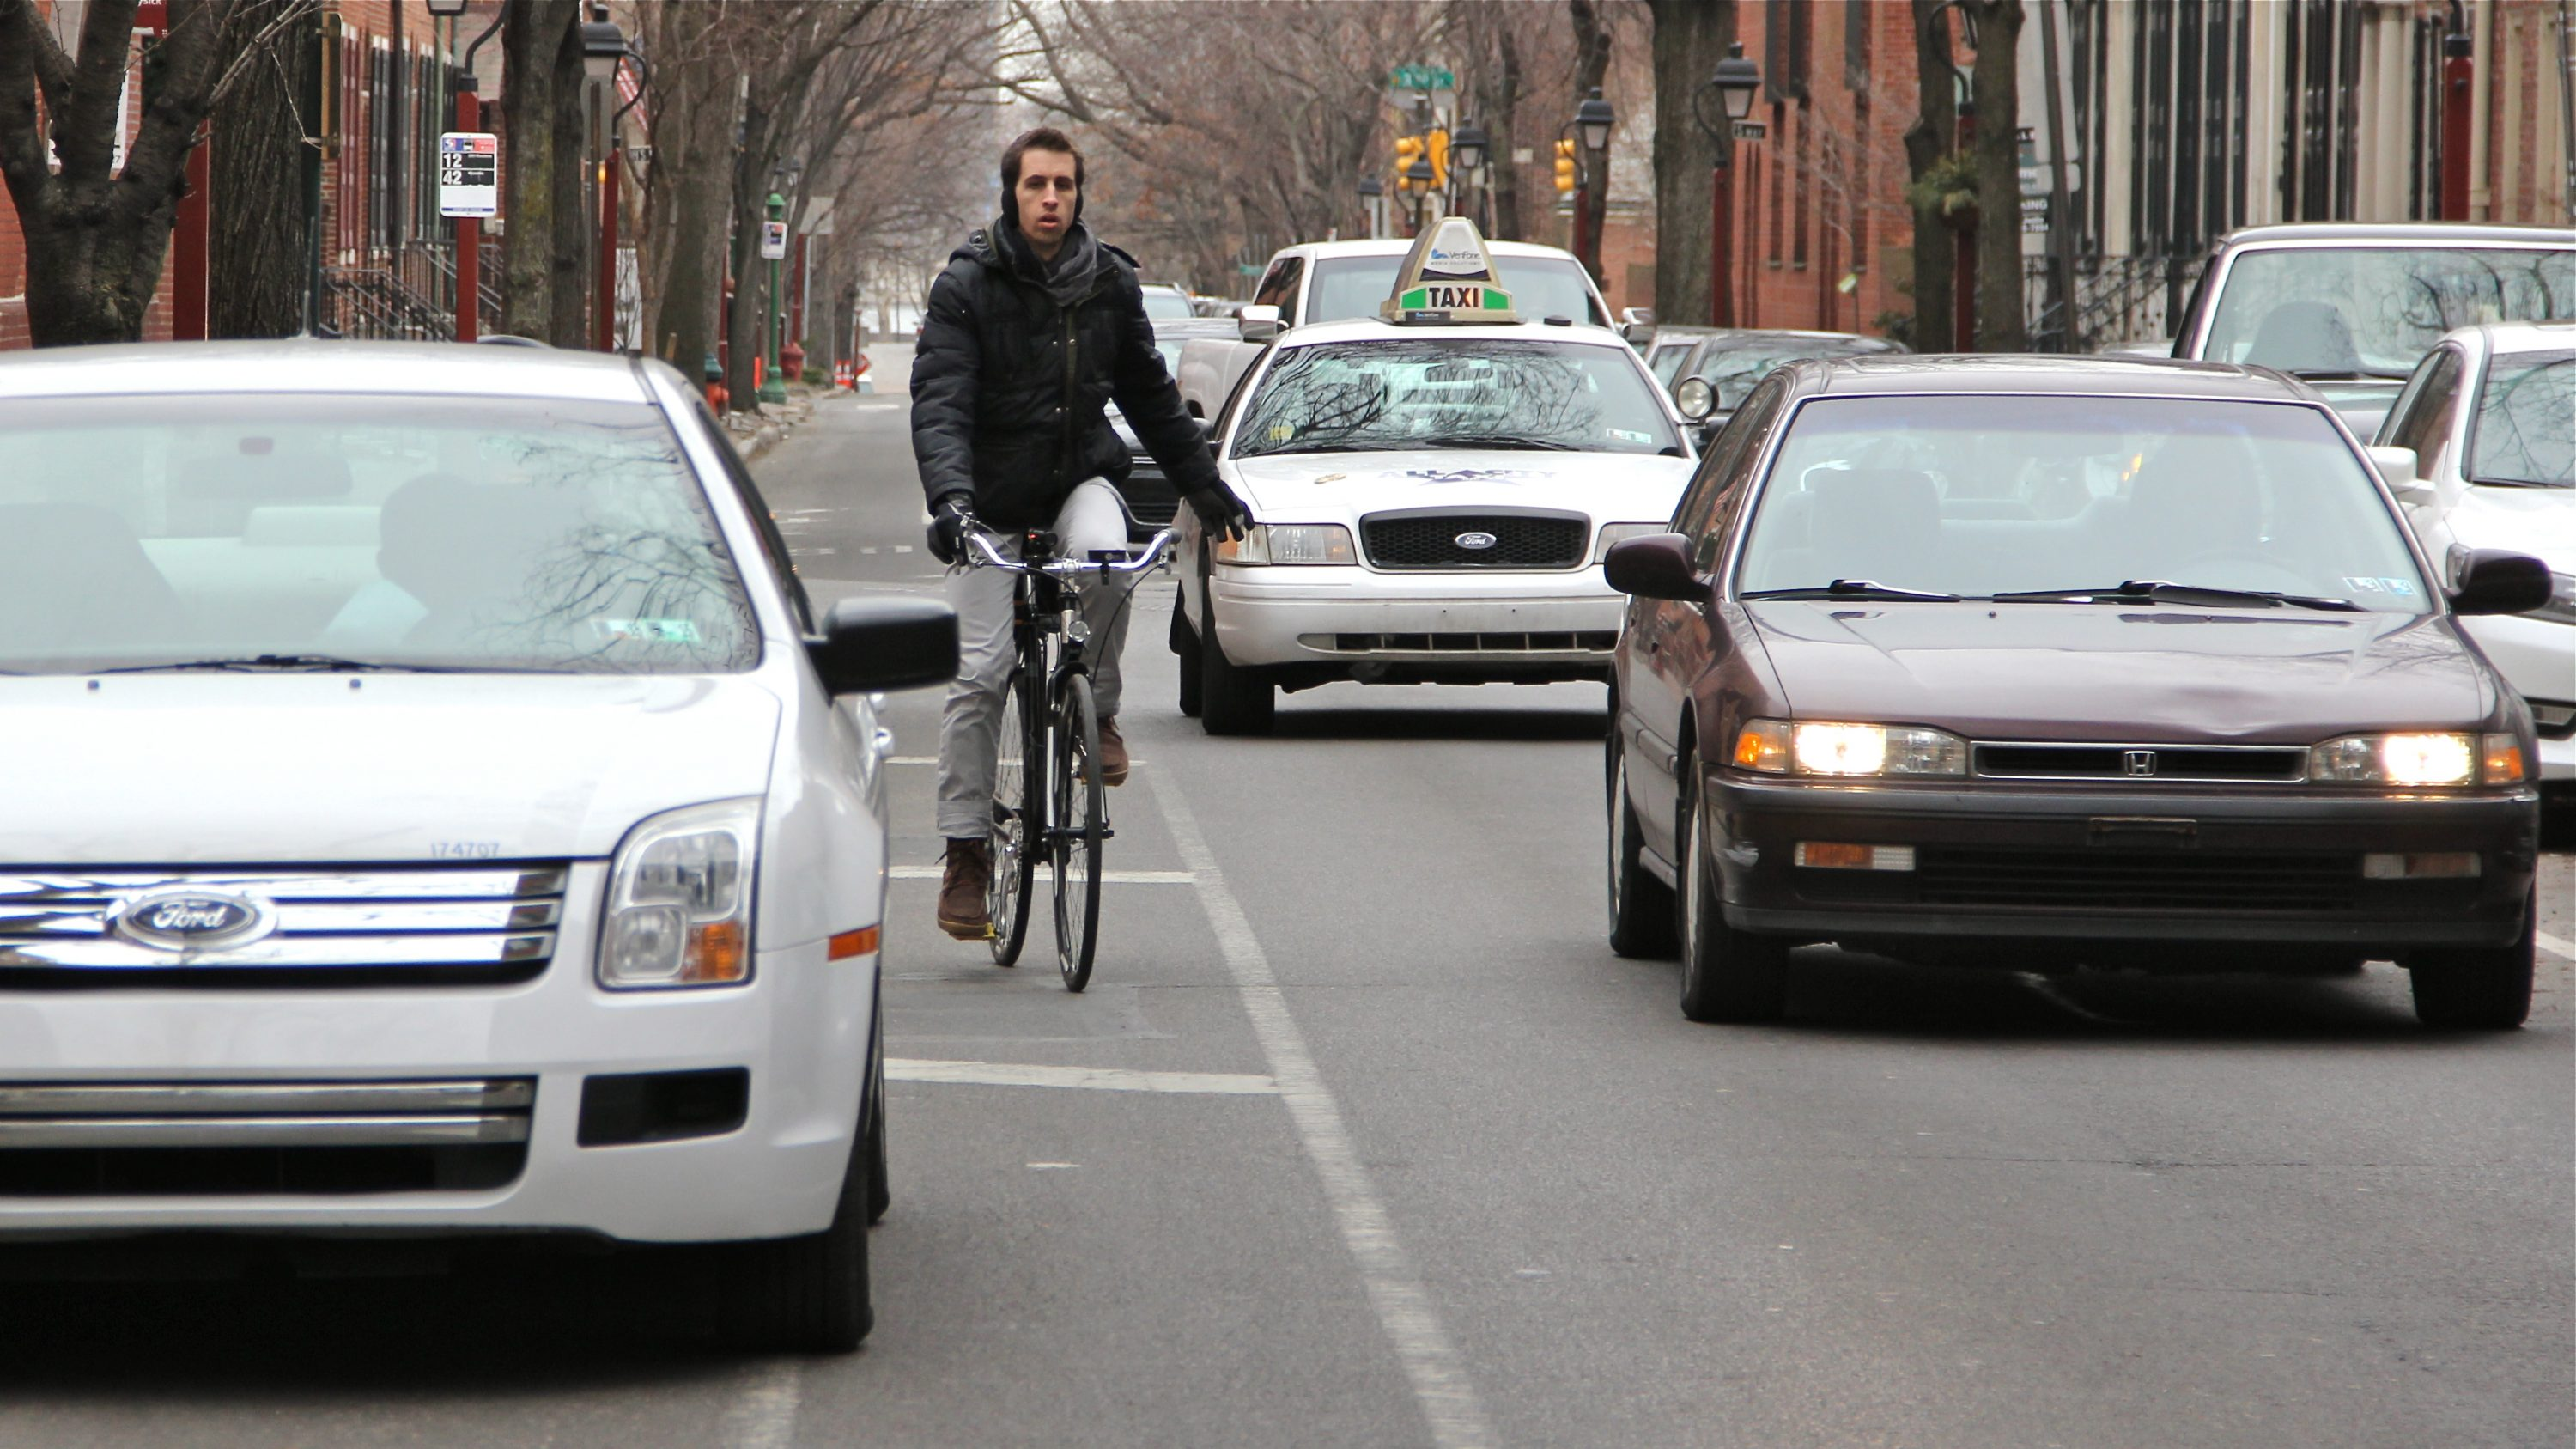 Philly bicyclist sues delivery company for blocking bike lanes